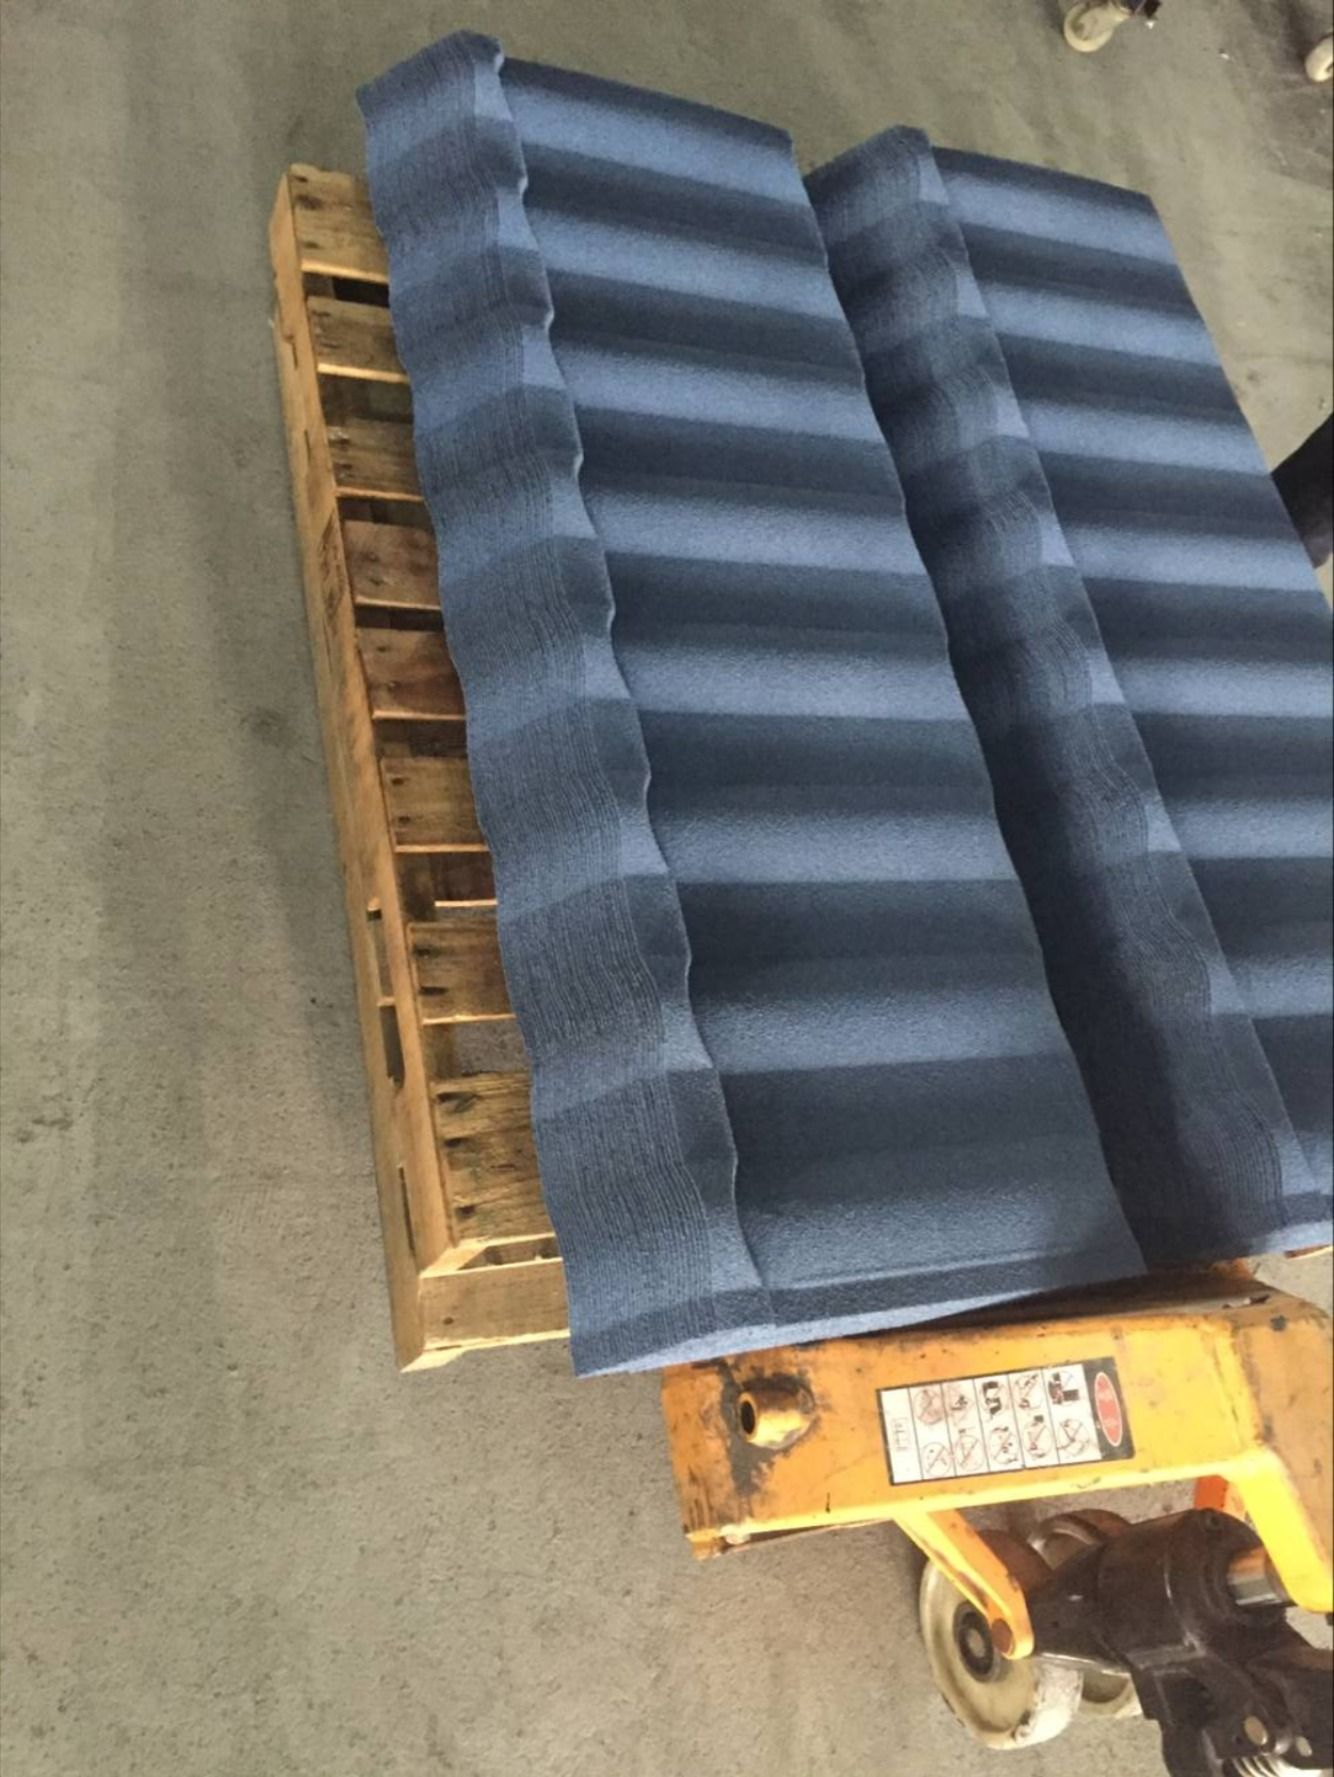 Production Of Stone Coated Milano Roofing Sheets In 2020 Roofing Sheets Aluminum Roof Sheet Metal Roofing